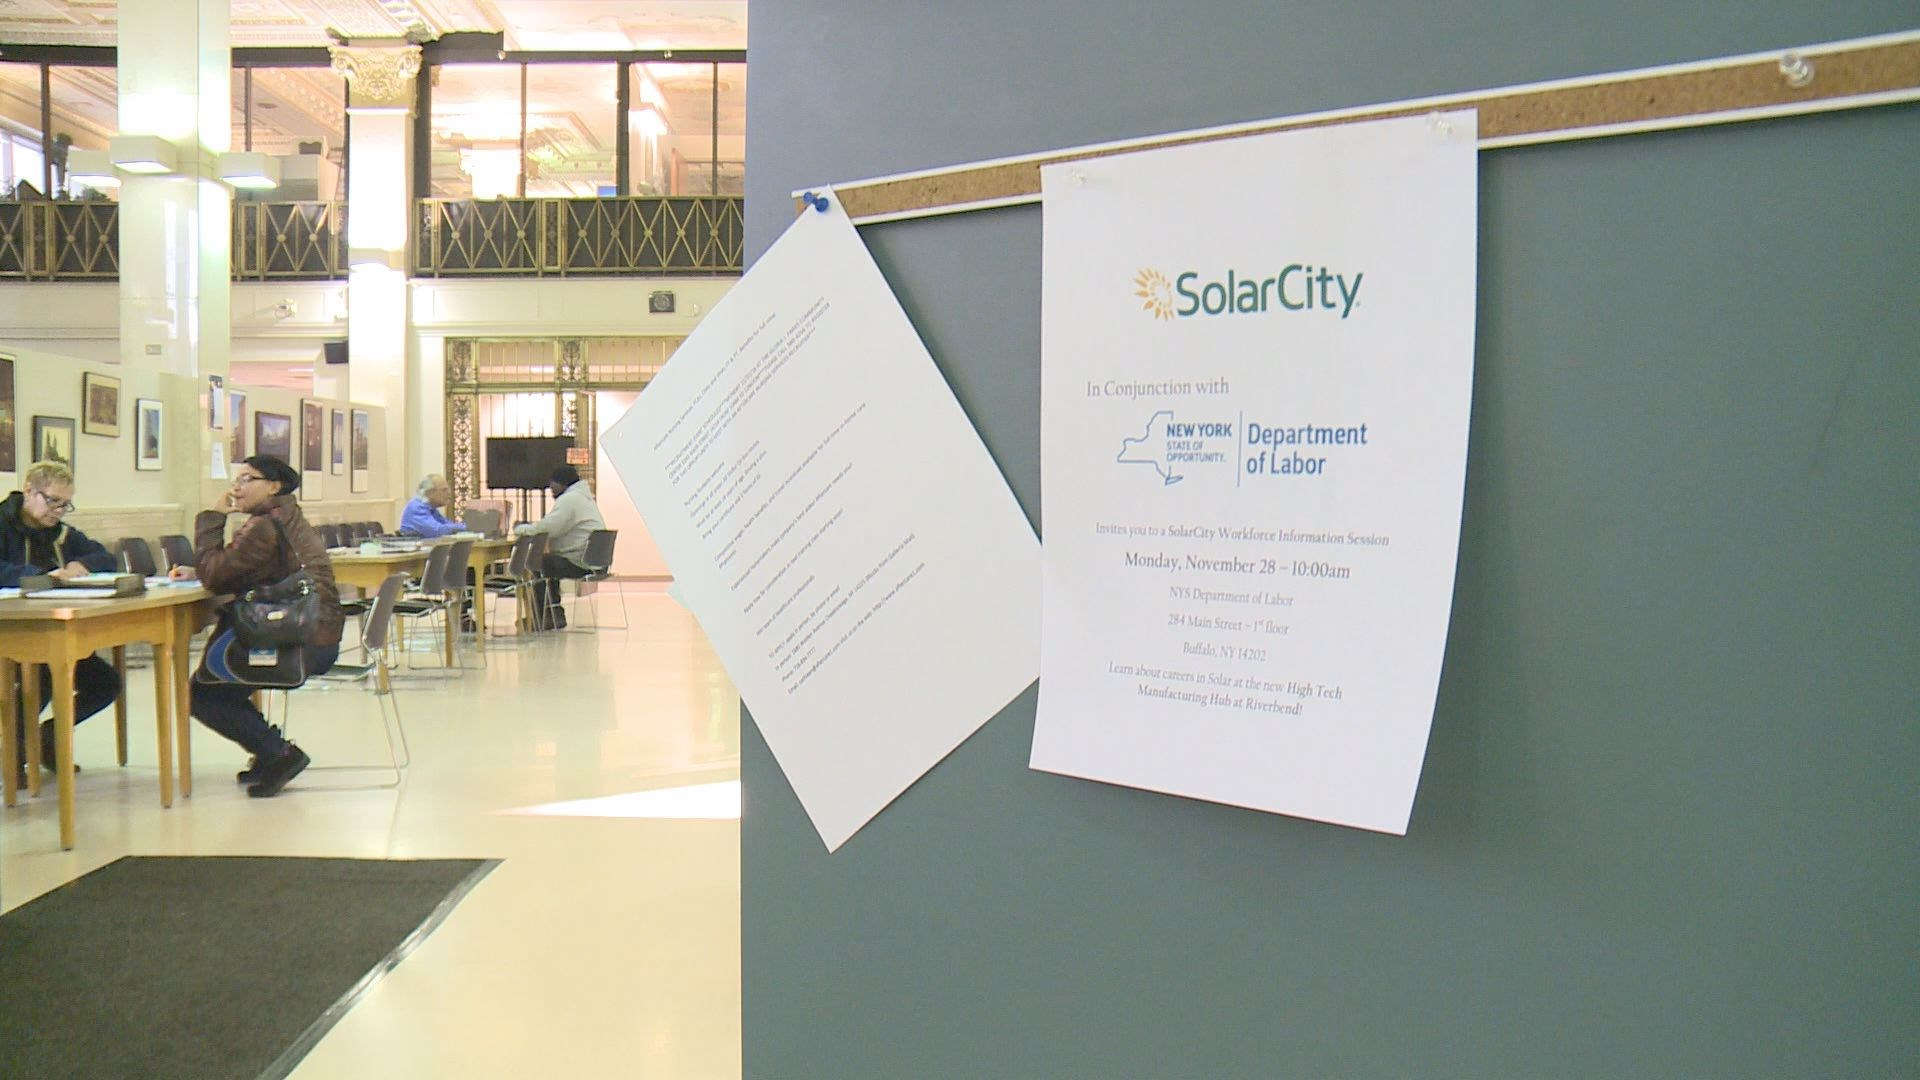 Flyer for SolarCity workforce information session at Buffalo, NY [Source: WGRZ]